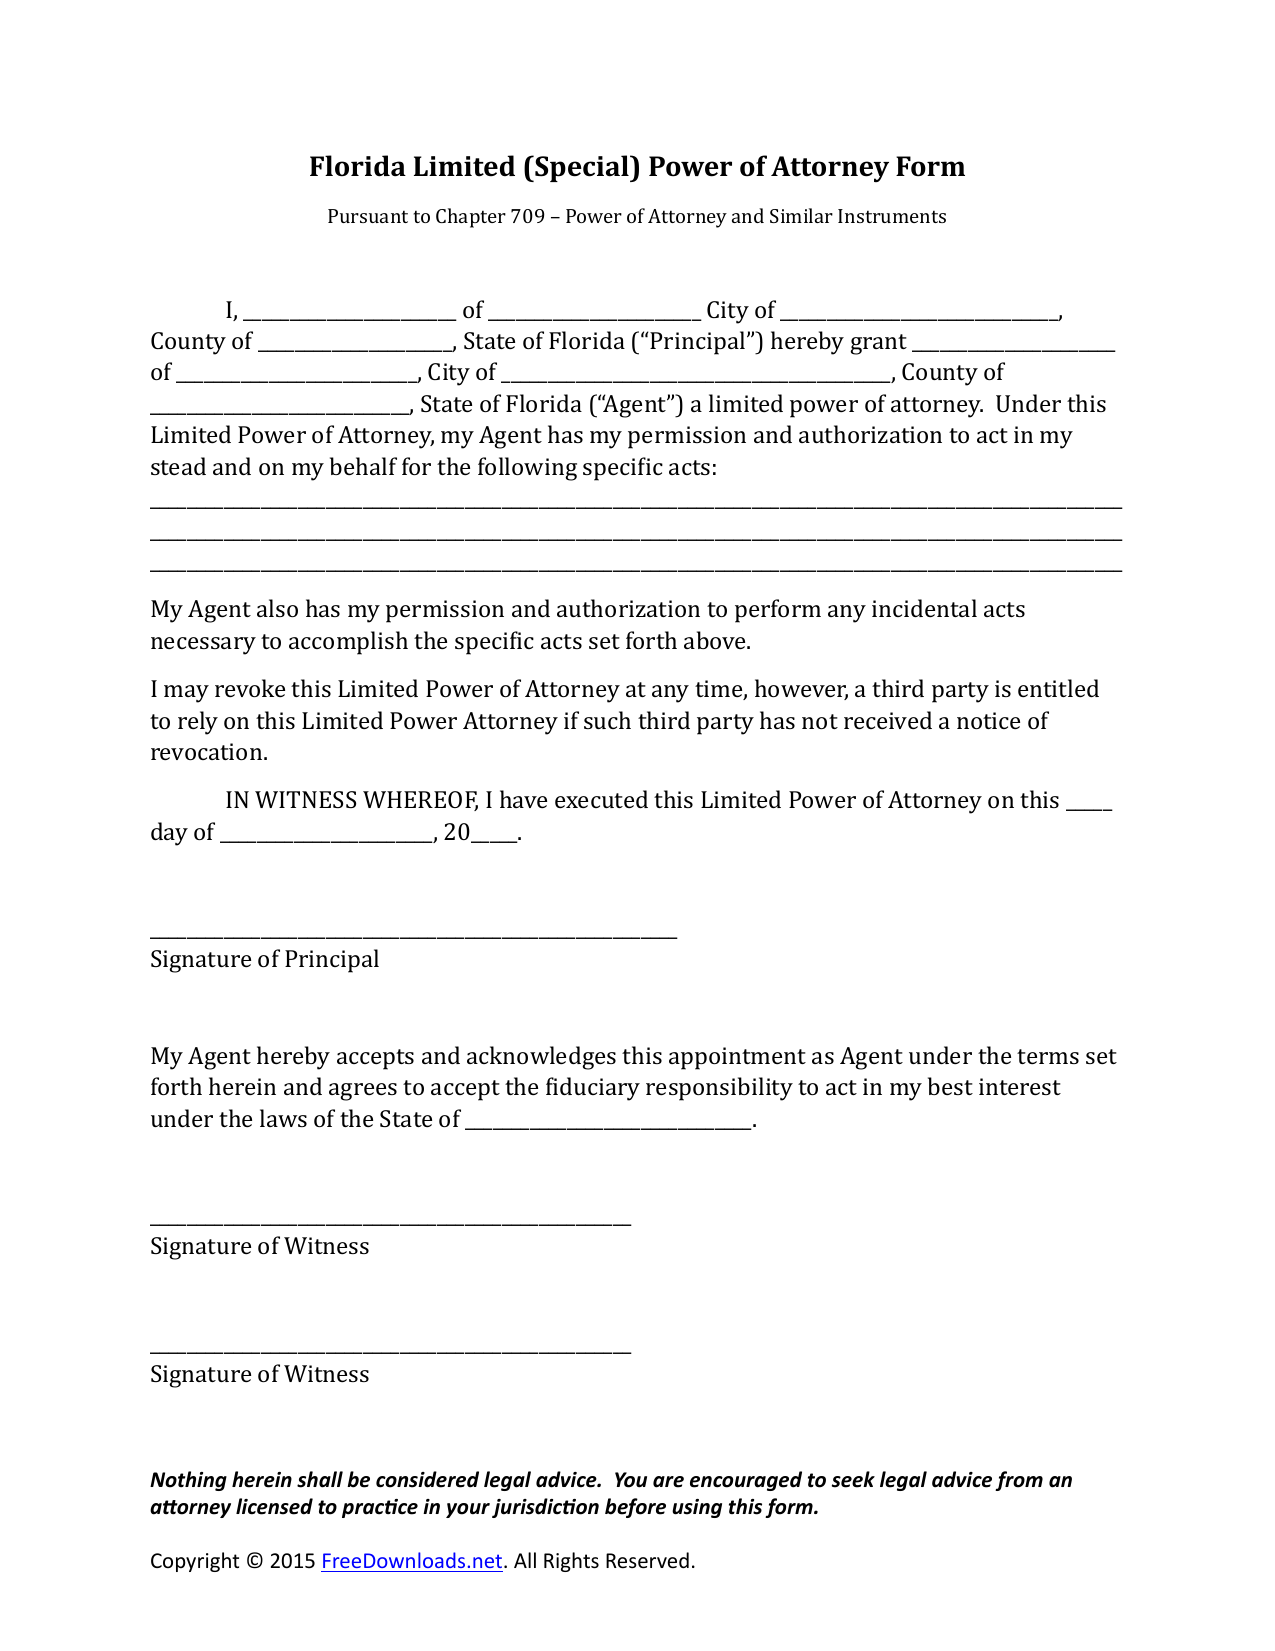 Download Florida Special Limited Power Of Attorney Form